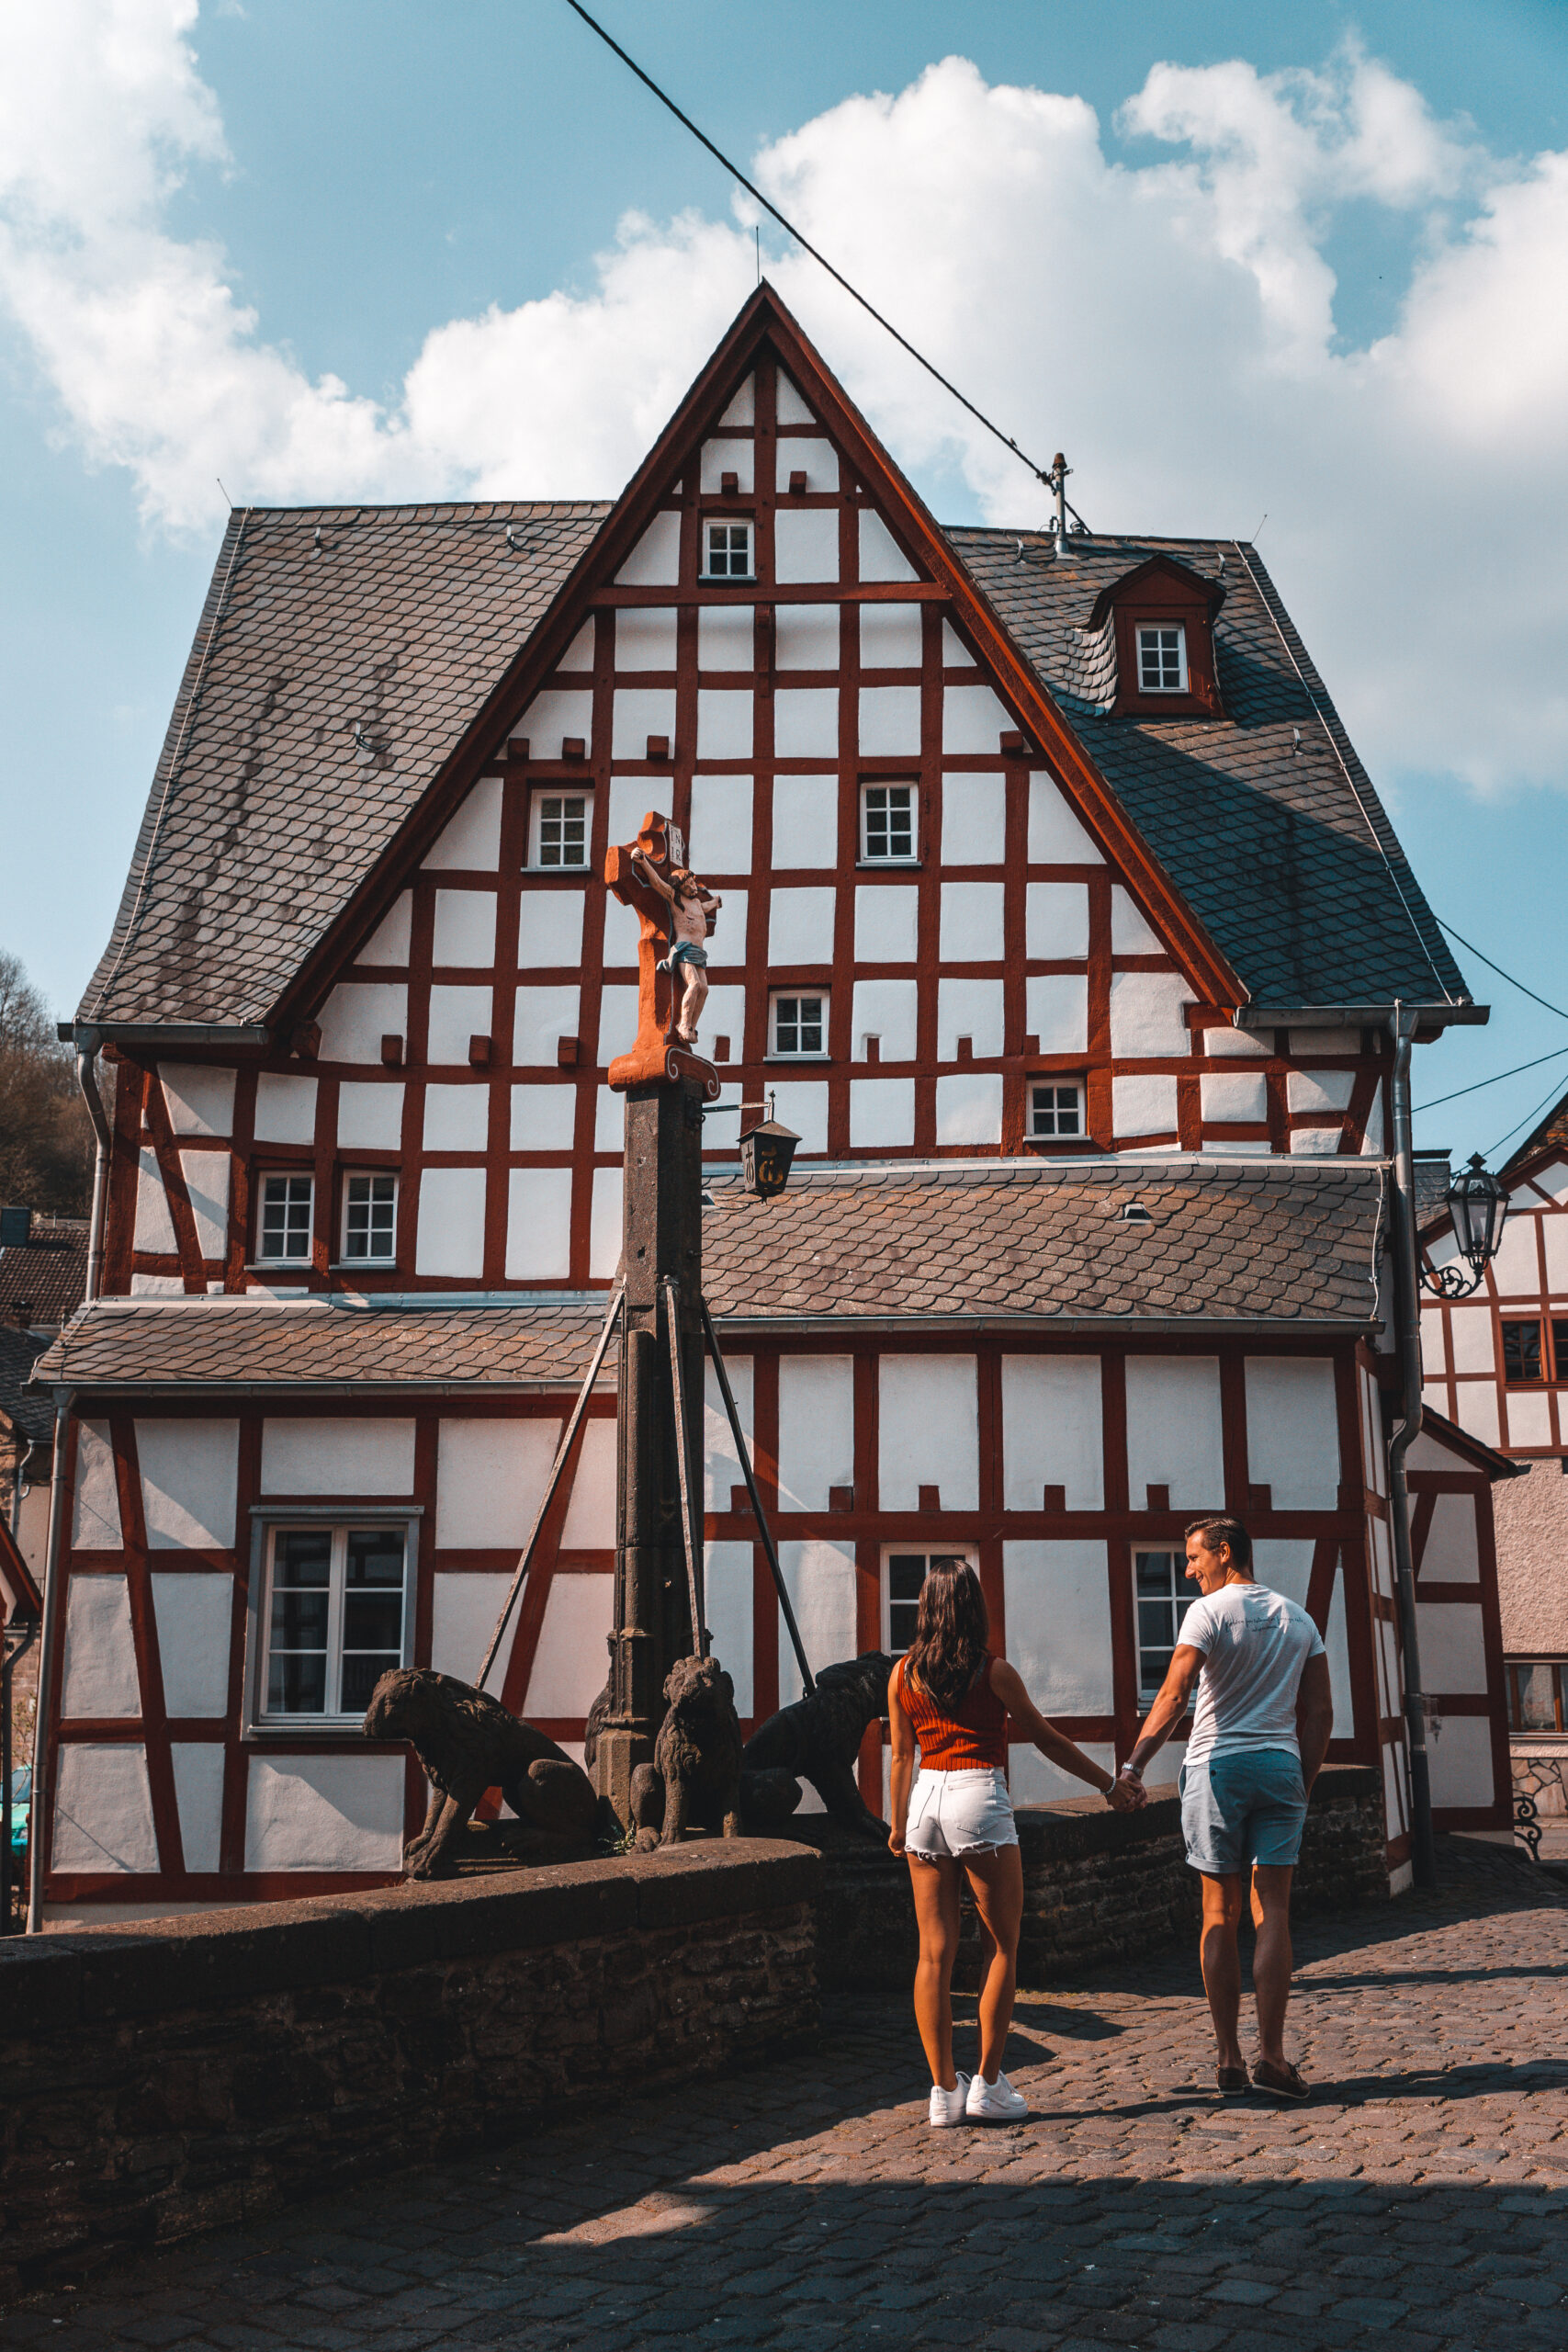 Monreal | German Eifel |Day Trips from Cologne